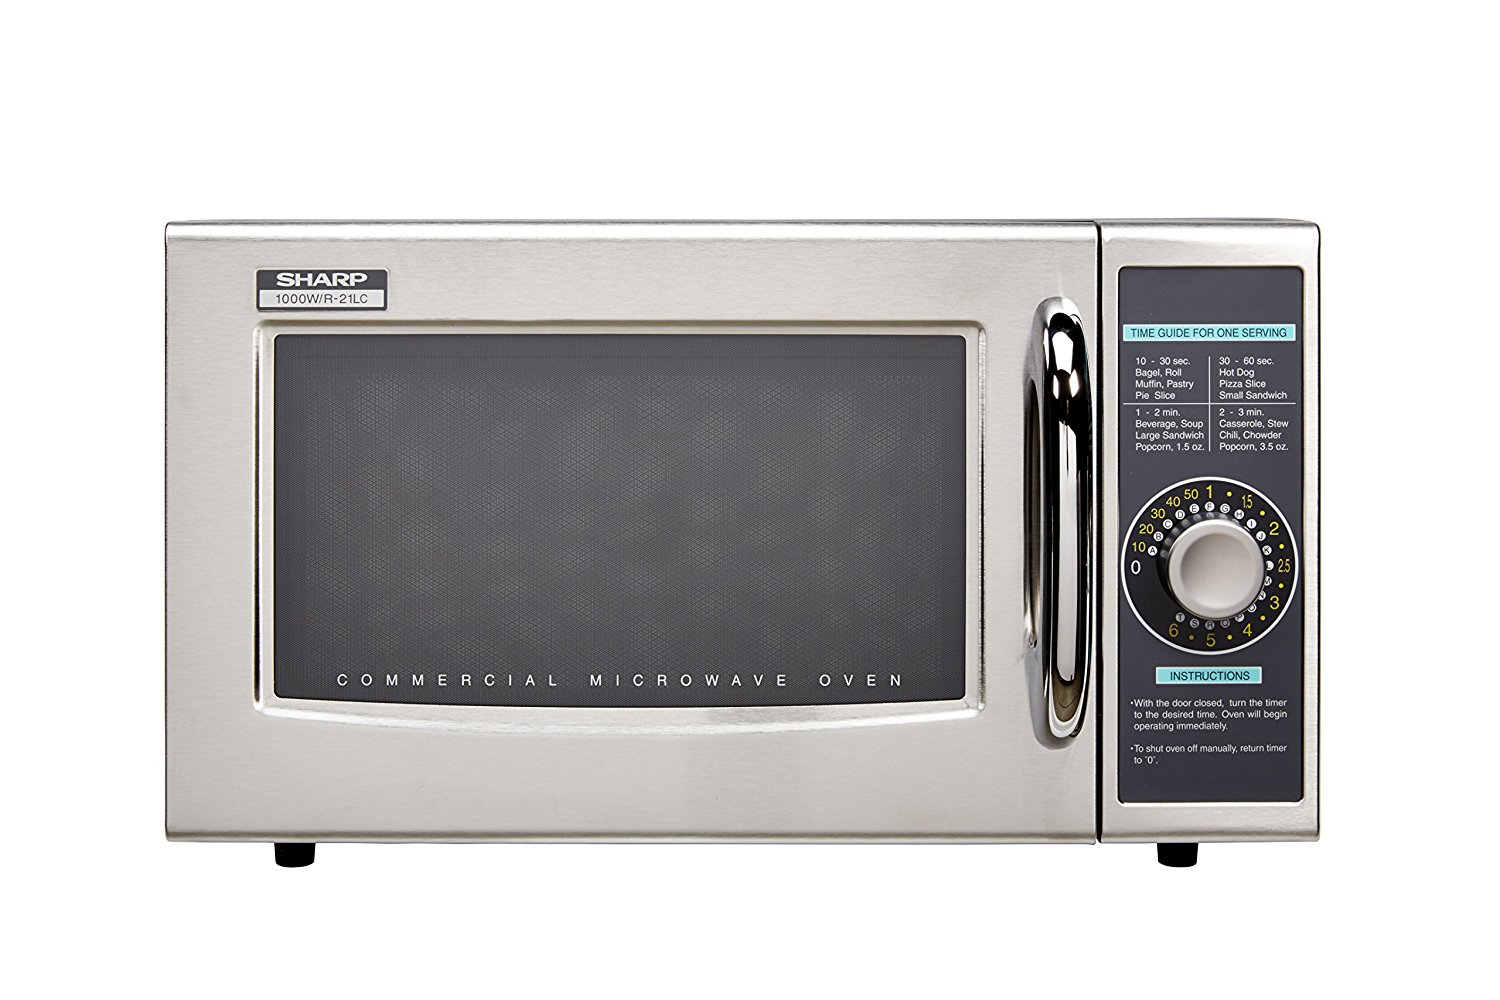 sharp microwave oven